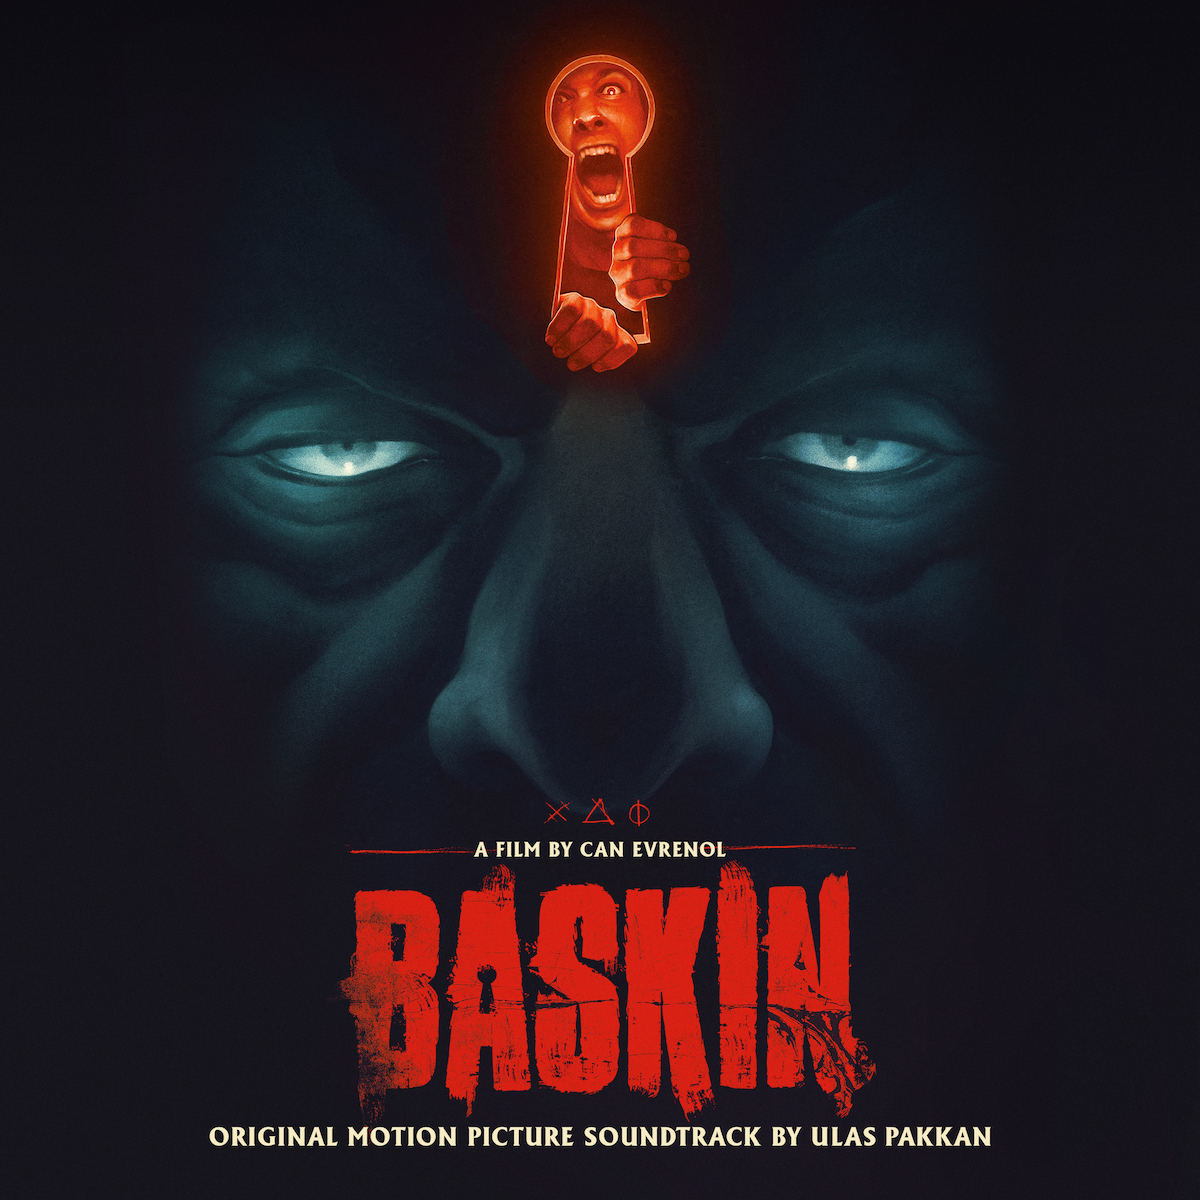 Kitchen Nightmares Dillons: Descend Into A Nightmare With This 'Baskin' Soundtrack Sampler